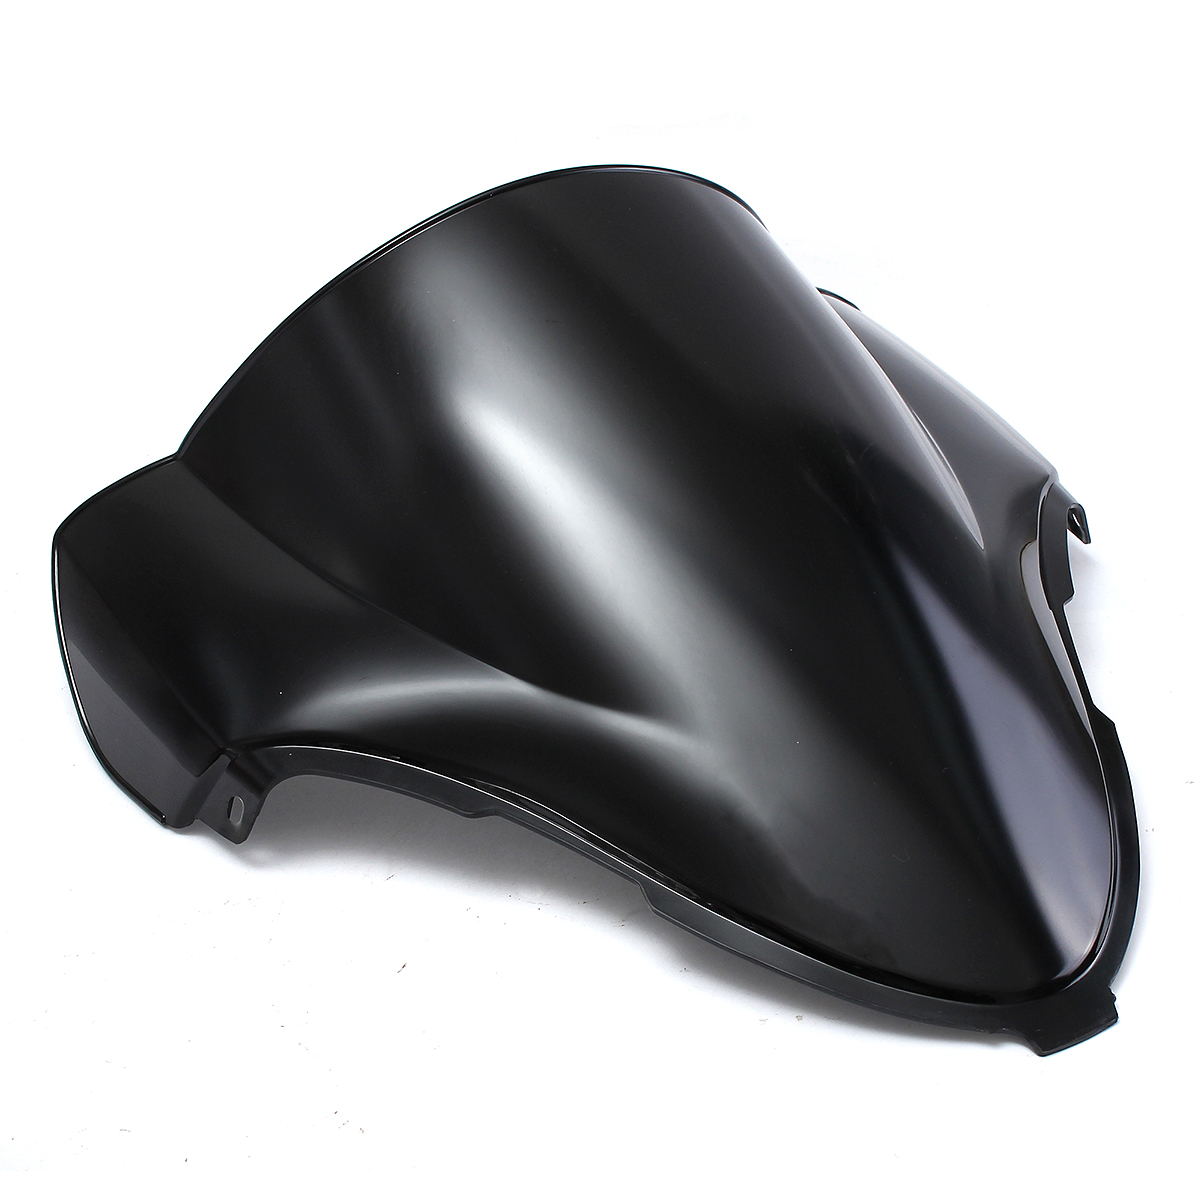 Wind Shield Windscreedn Double Bubble For Suzuki GSXR 1300 Hayabusa 1999-2007